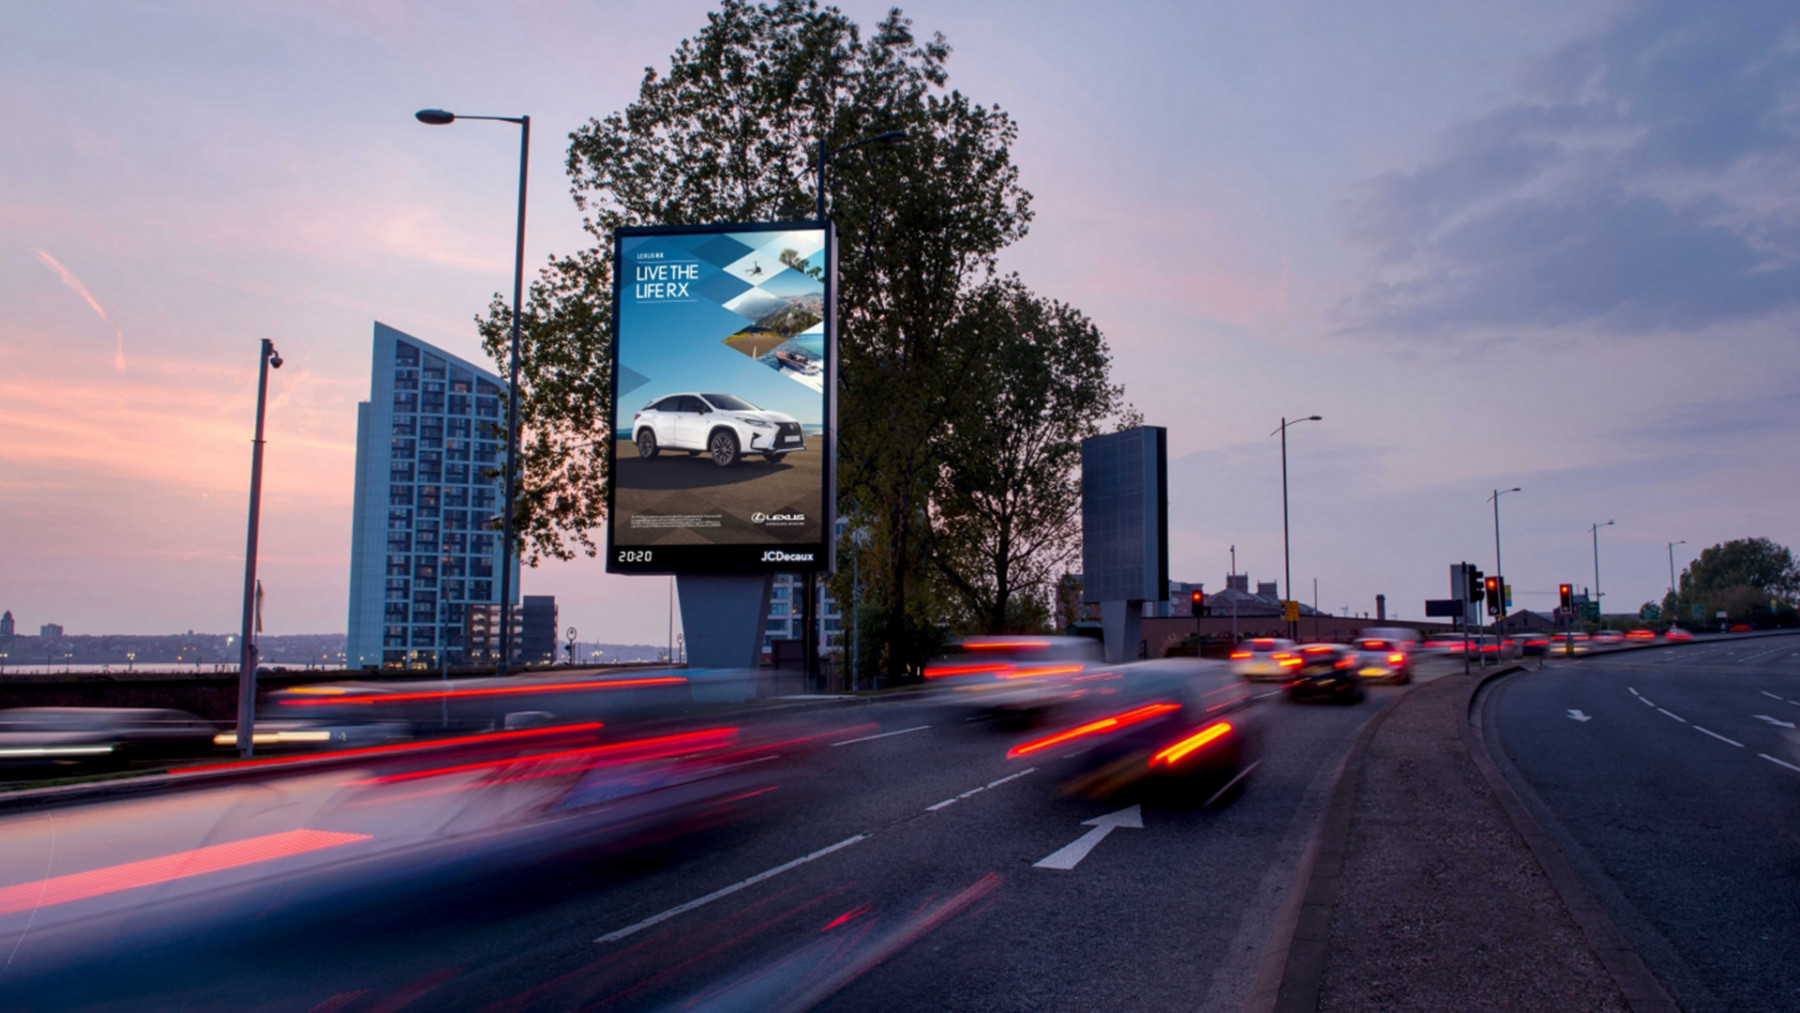 Liverpool Hopes For Million Pound Out Of Home Advertising